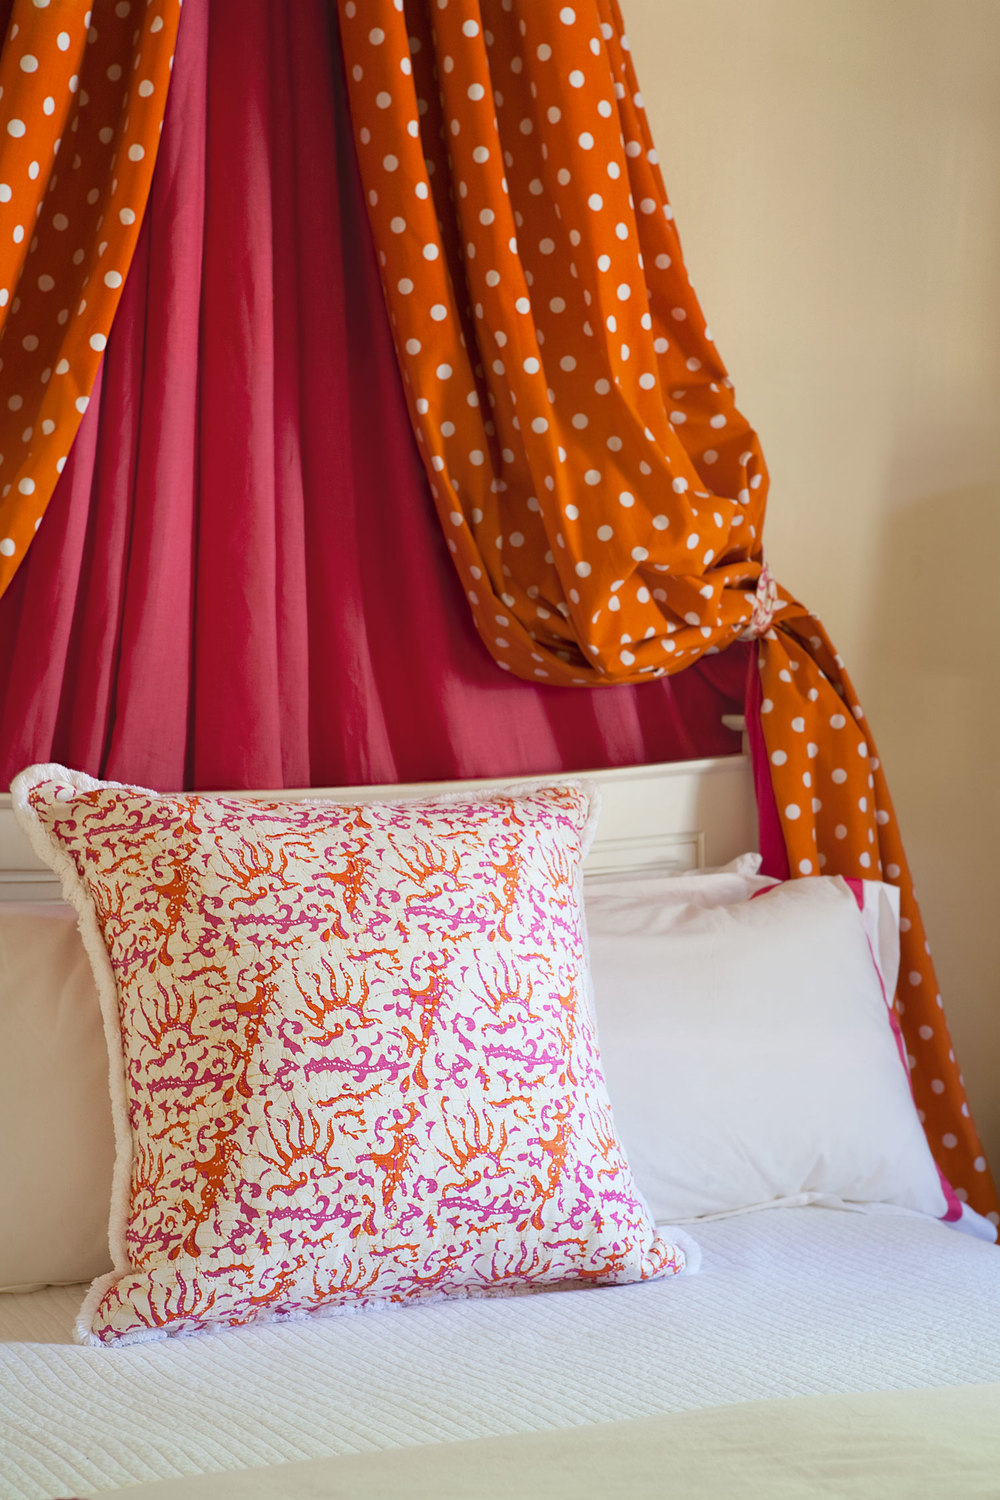 orange-polka-dot-bed-canopy-quadrille-cushion-white--diane-bergeron.jpg